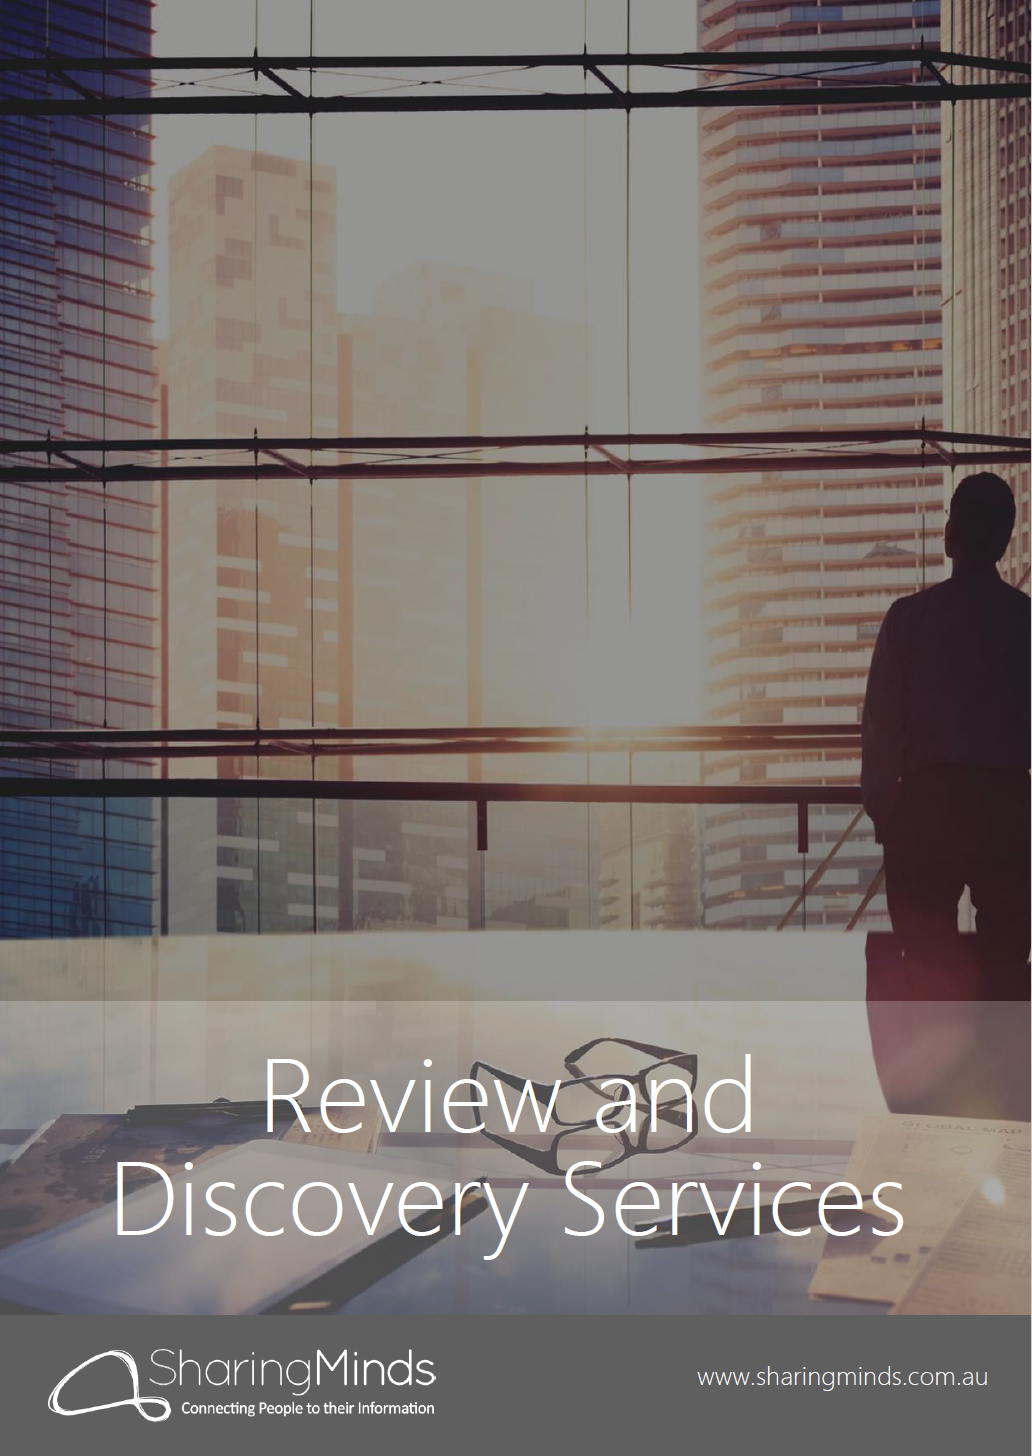 Brochure - COVER ONLY - Review and Discovery Services.PNG